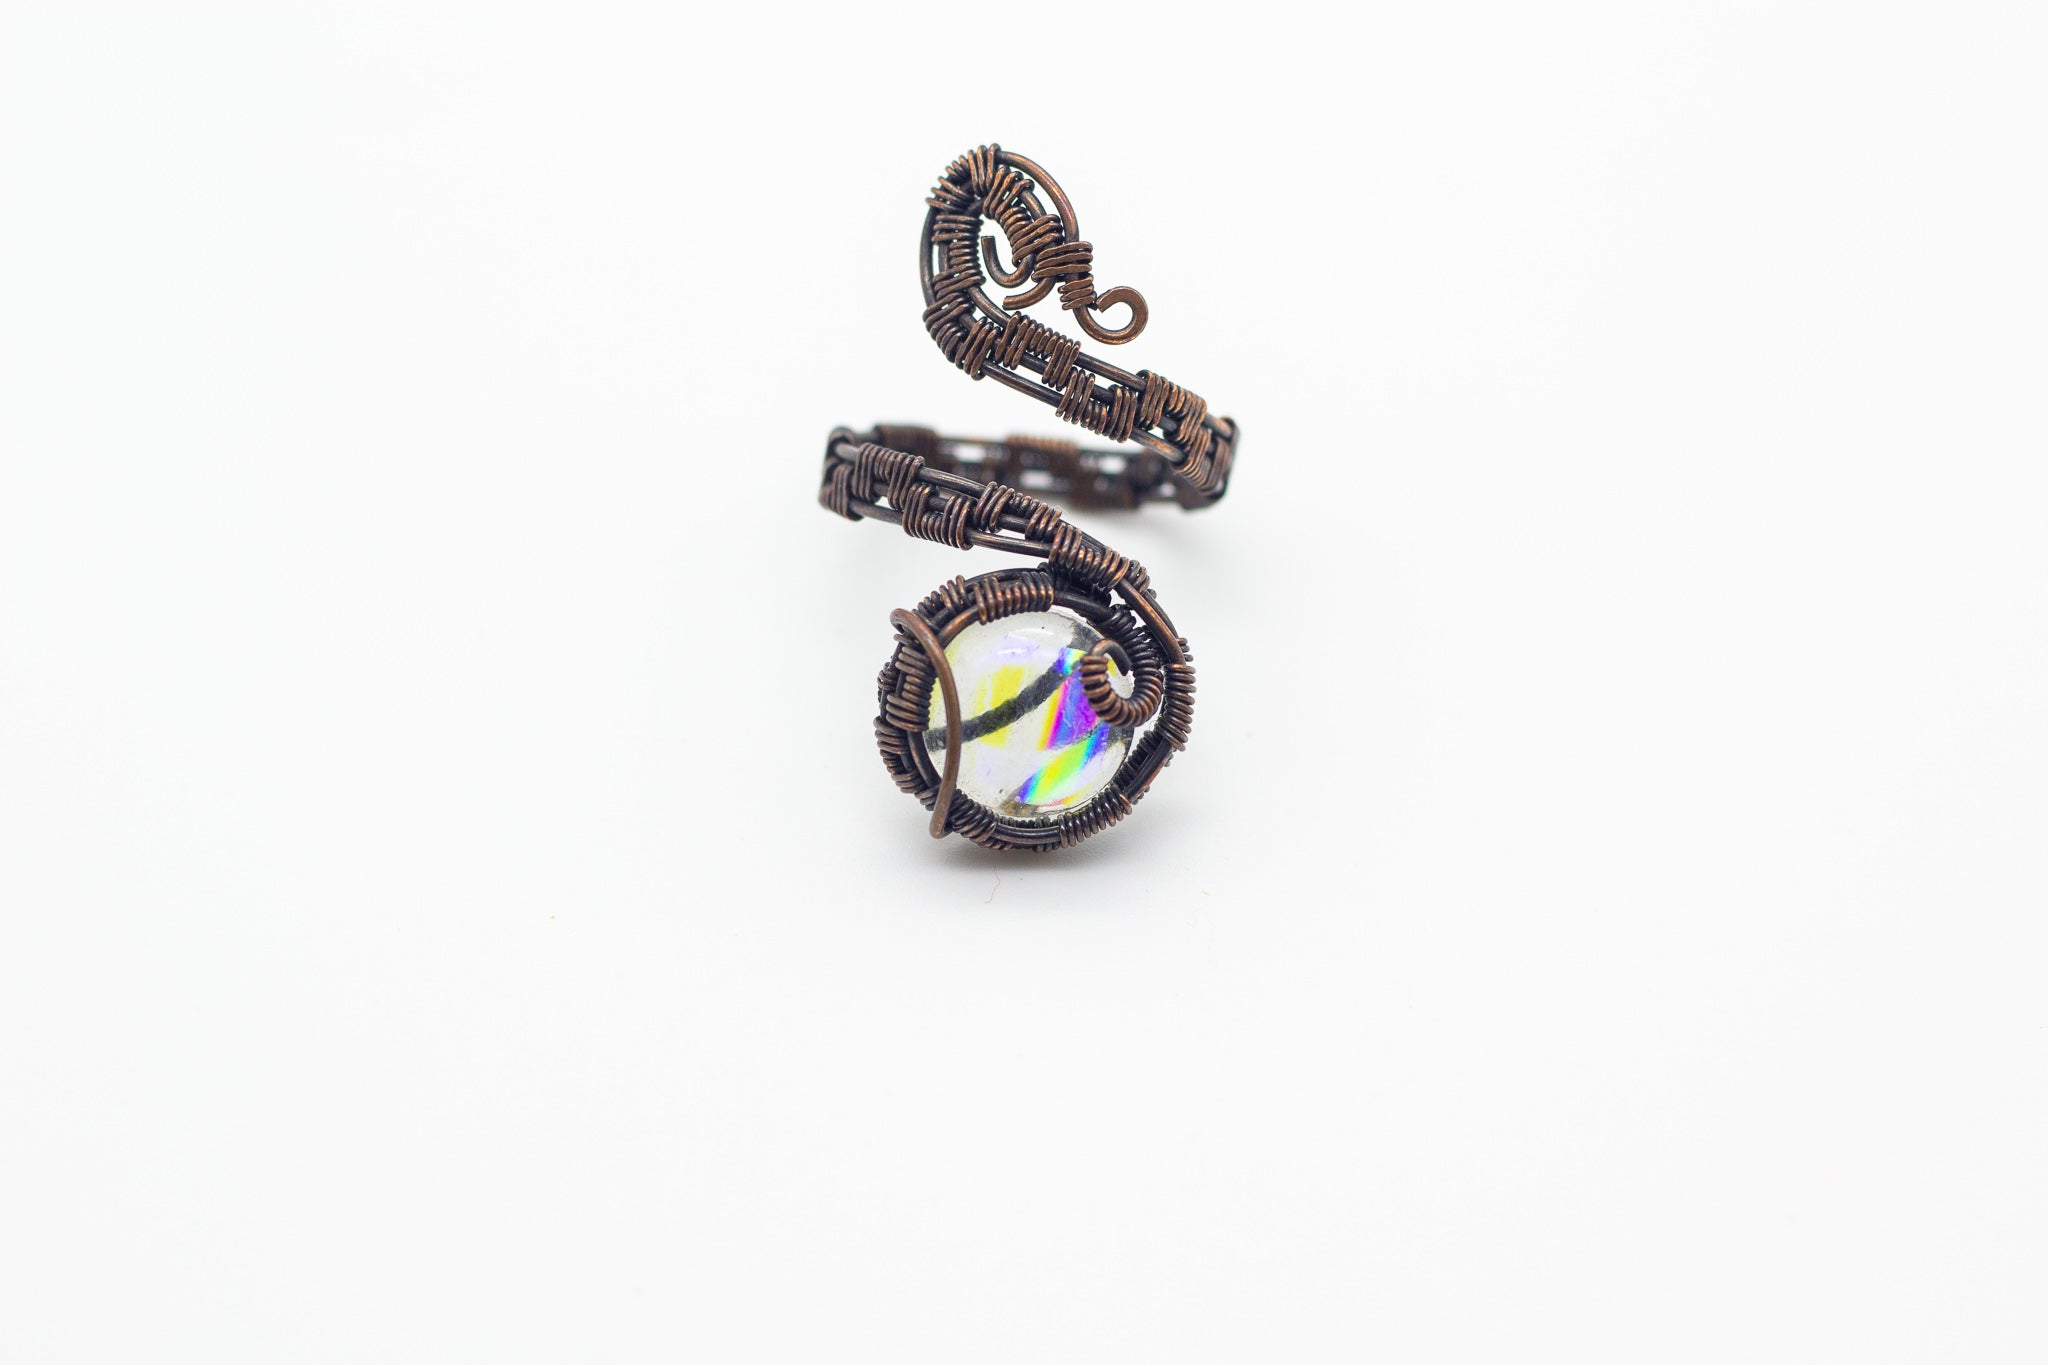 handmade copper wire wrapped adjustable ring with colorful transparent fused glass accent